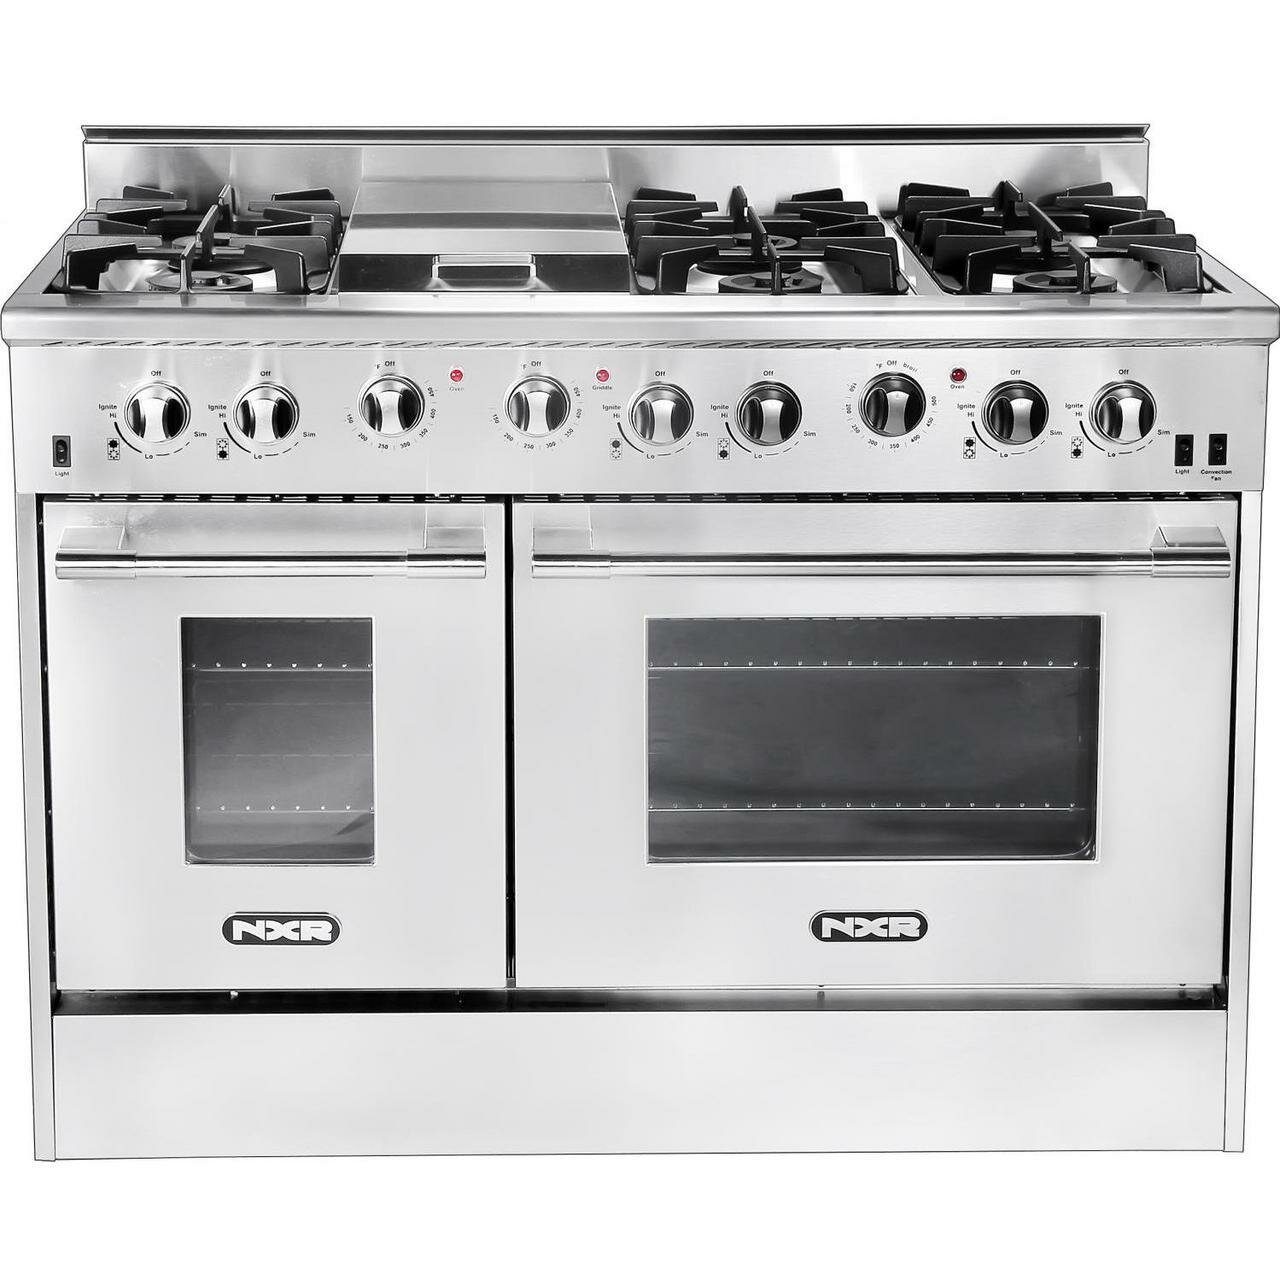 Nxr Professional Ranges 48 Free Standing Gas Range With Griddle Wayfair